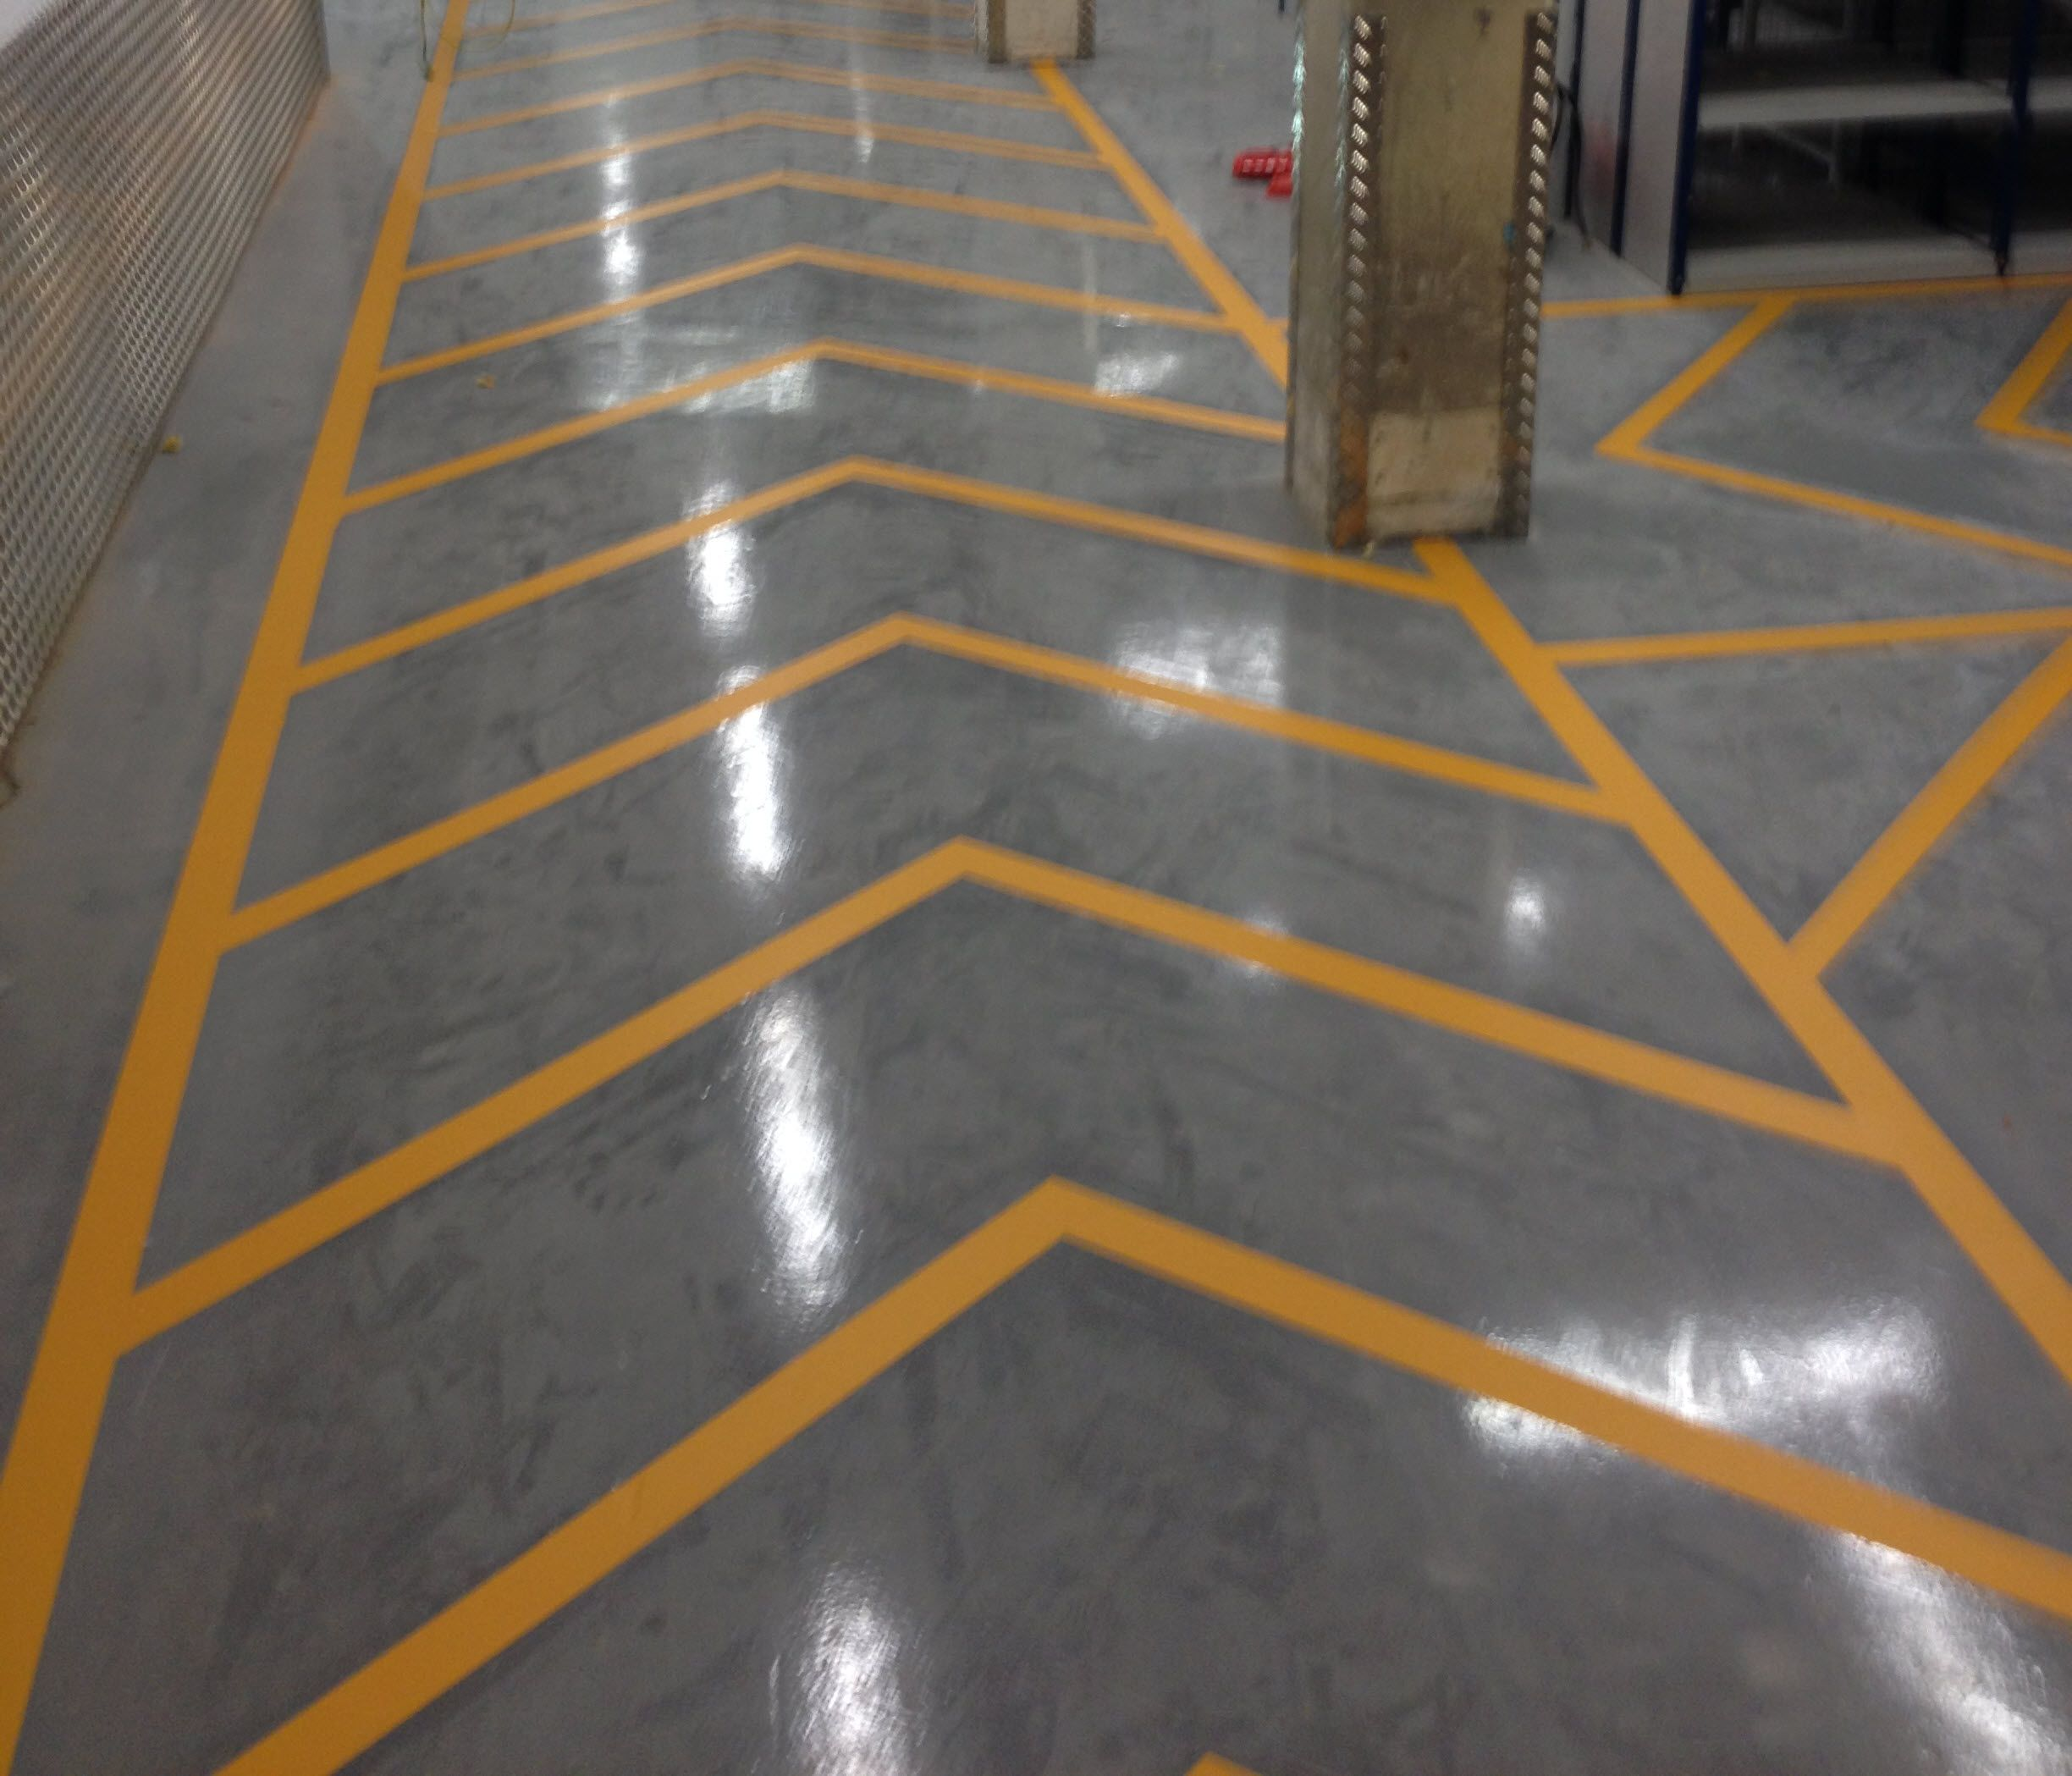 education courses g floor nec electrical garages content continuing